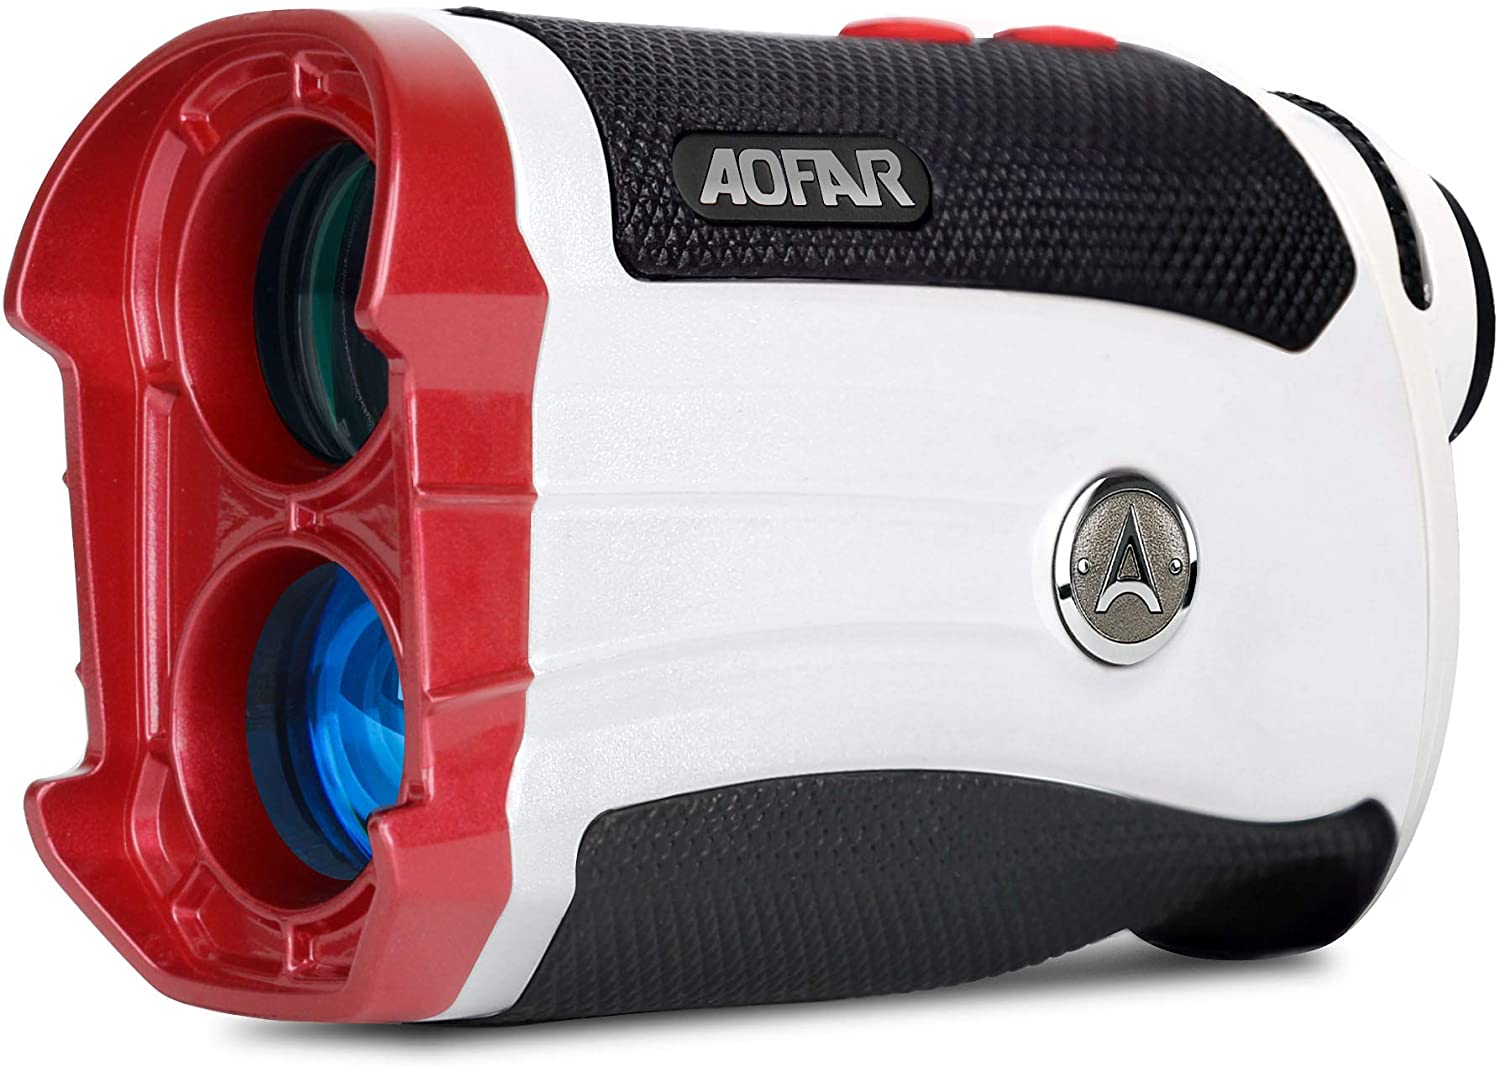 Aofar GX-2S Golf Rangefinder Review